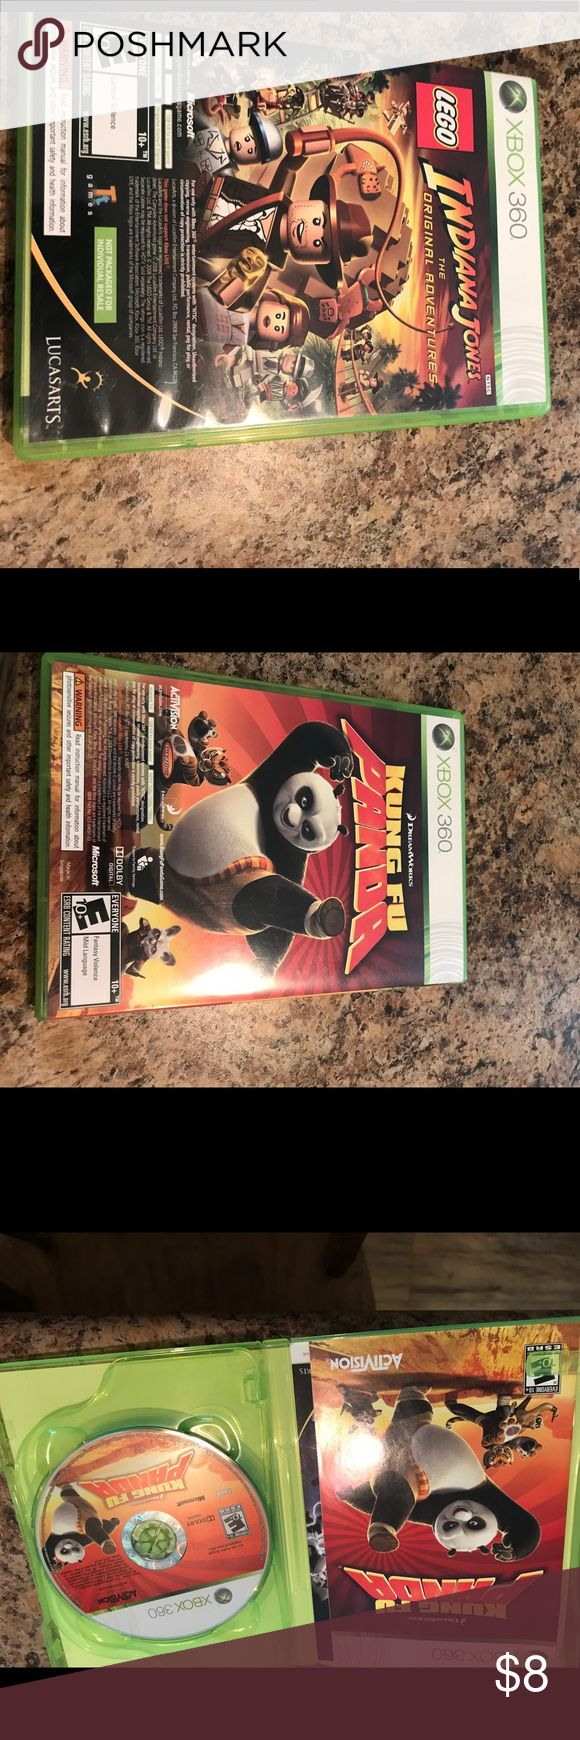 Xbox 360 game 2 in 1 game set. Lego Indiana Jones and Kung Fu Panda. Xbox 360 game. Case and disc are in perfect condition. Other